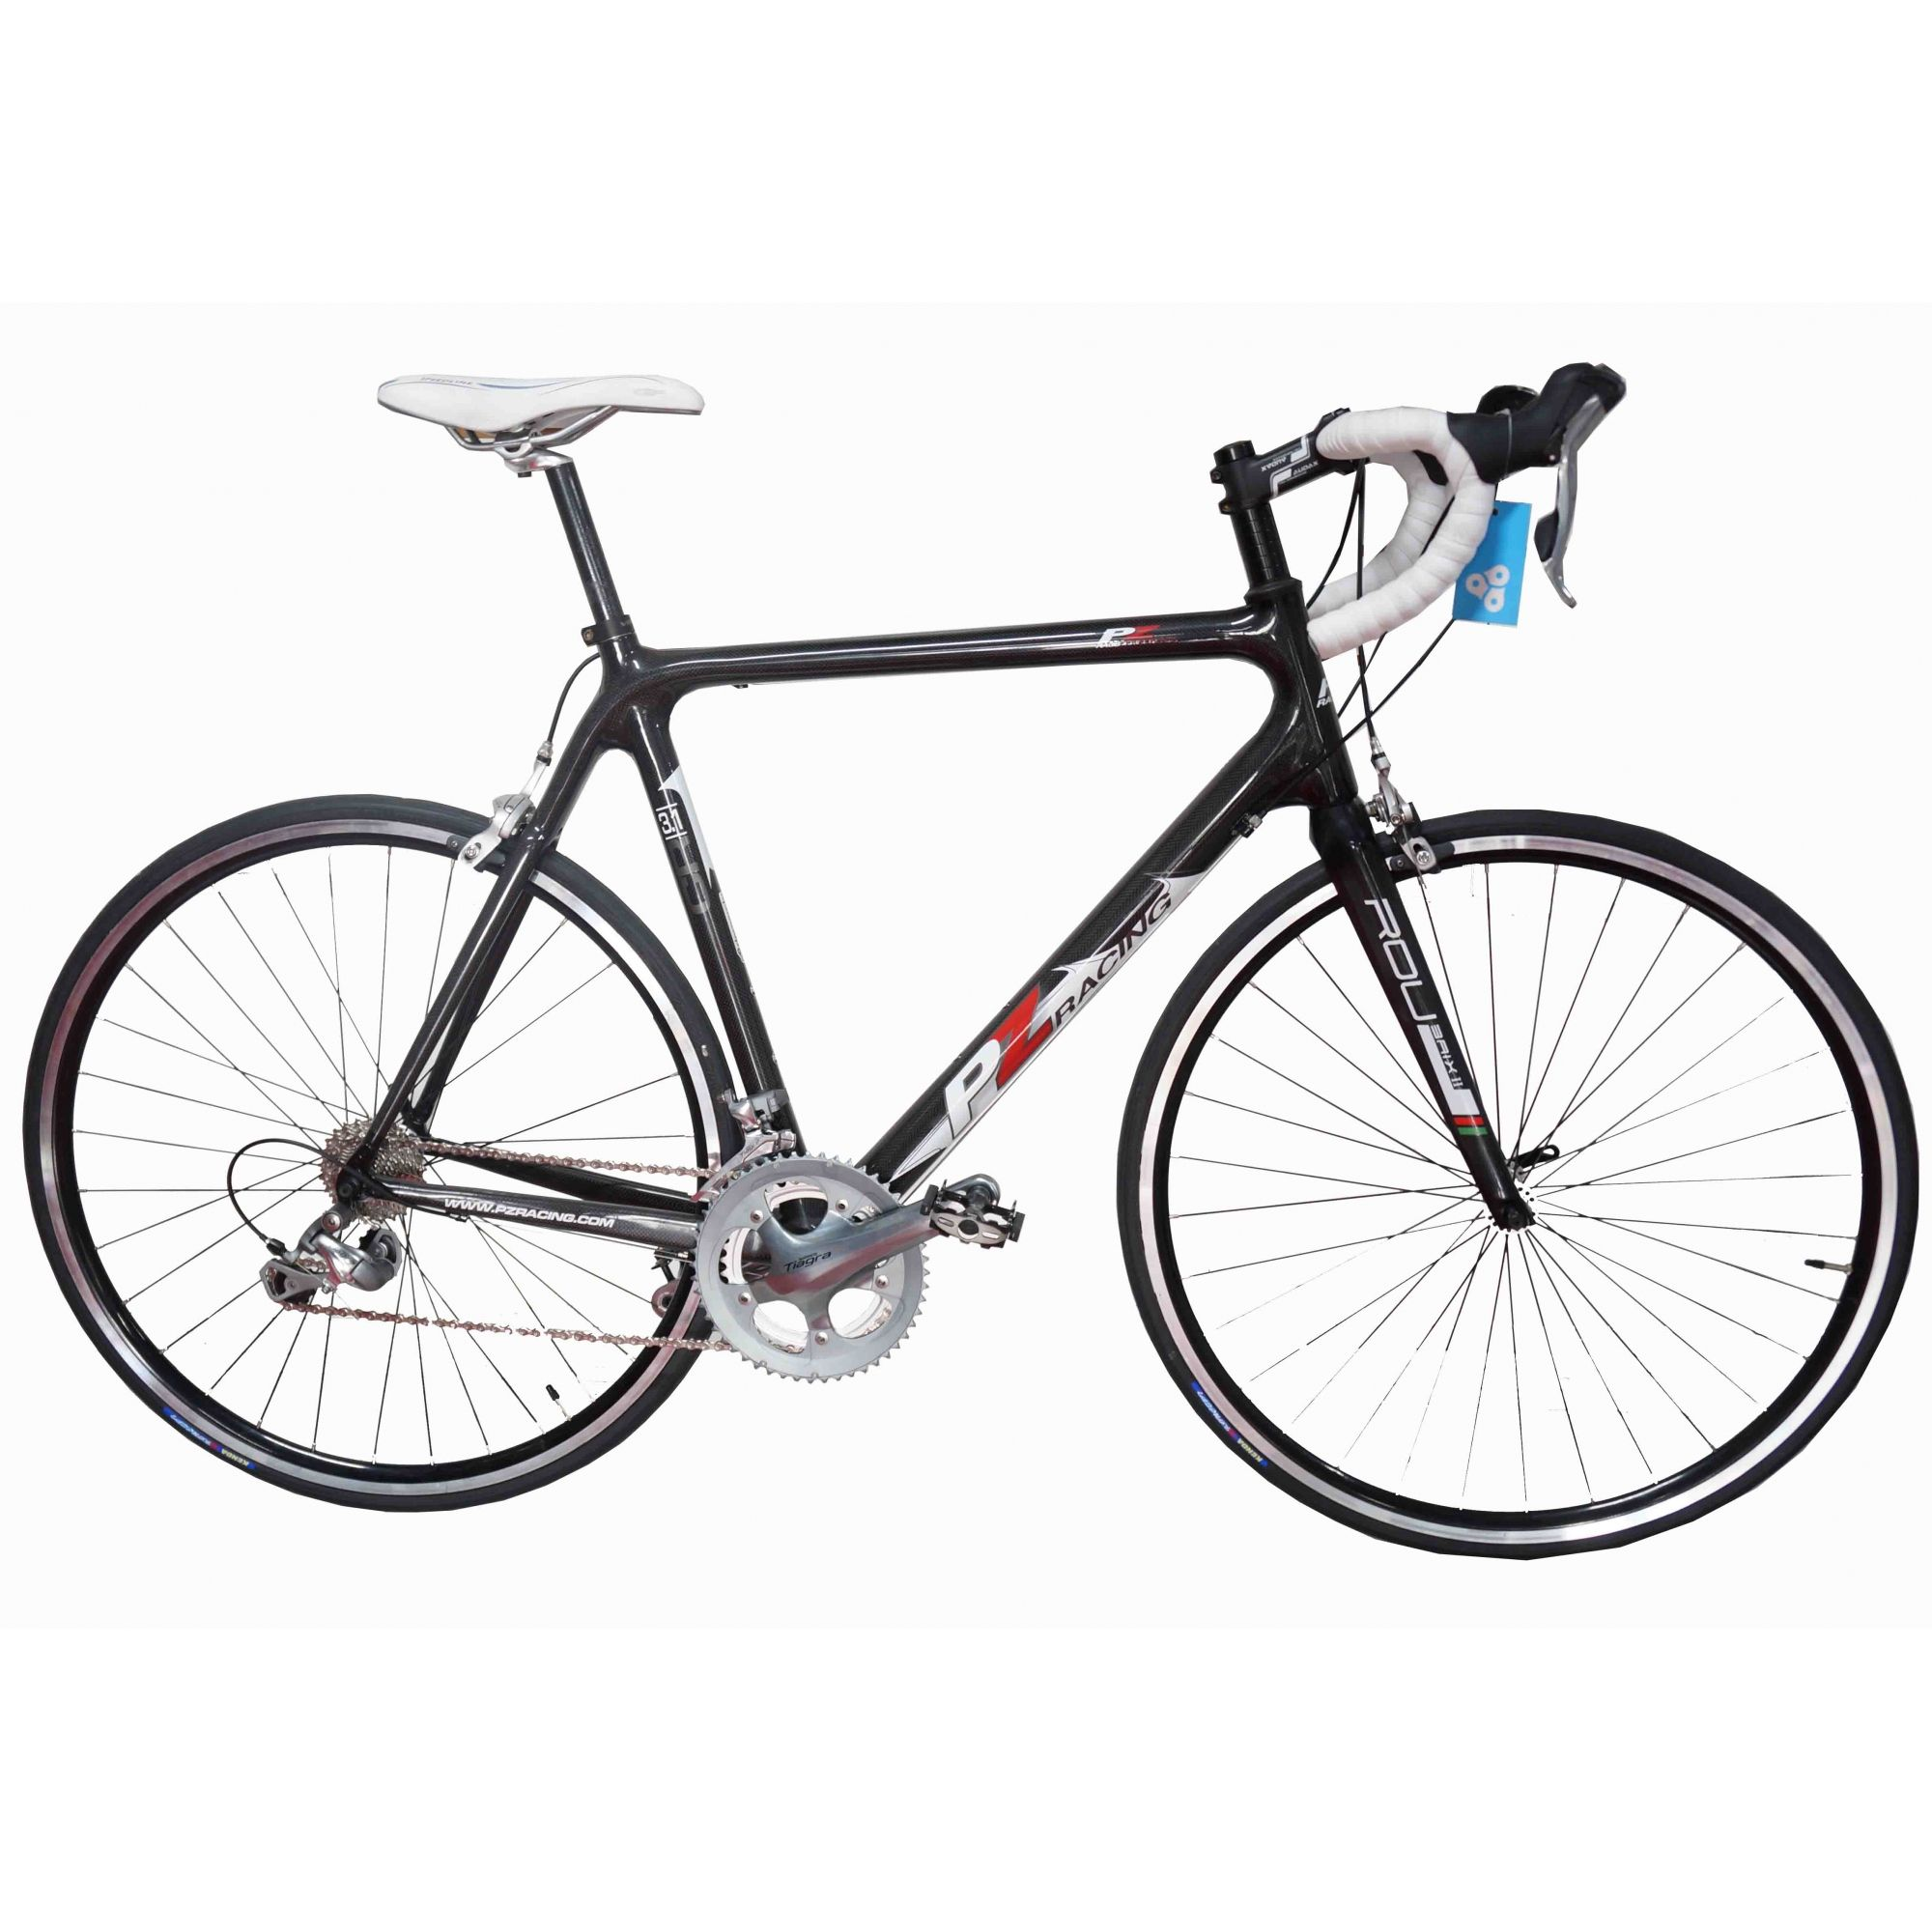 BICICLETA 700 PZ RACING 3.1 CARBONO